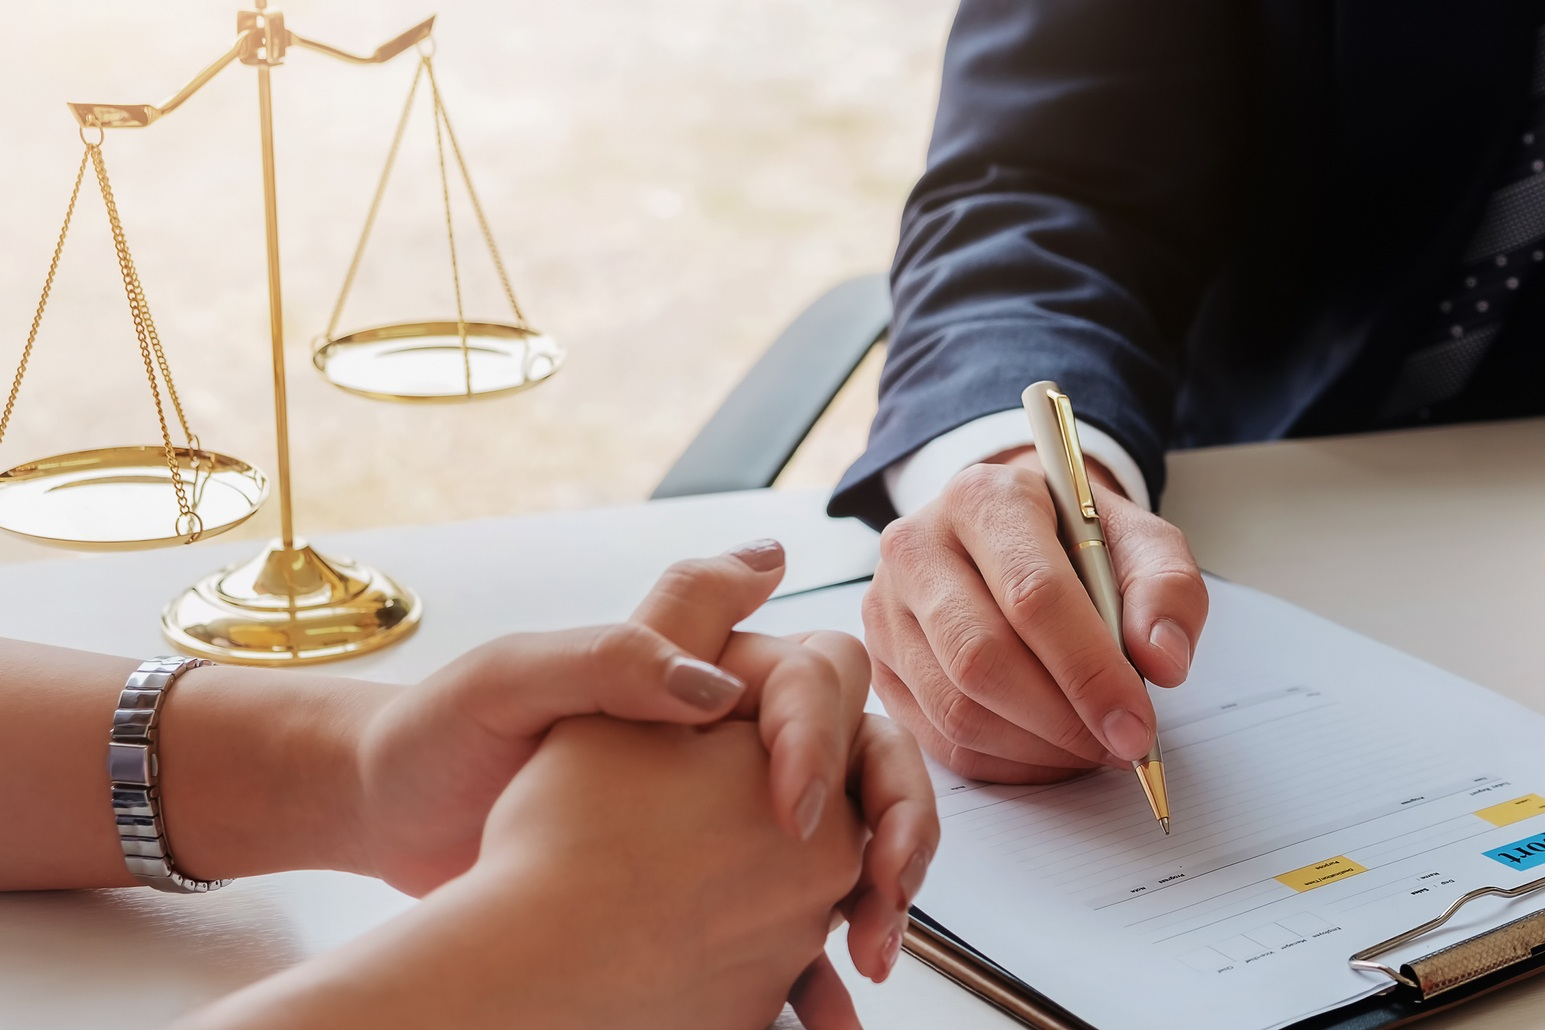 probate/trust administration - The passing of a loved one is never easy. We can help you navigate through this difficult and often complex process.